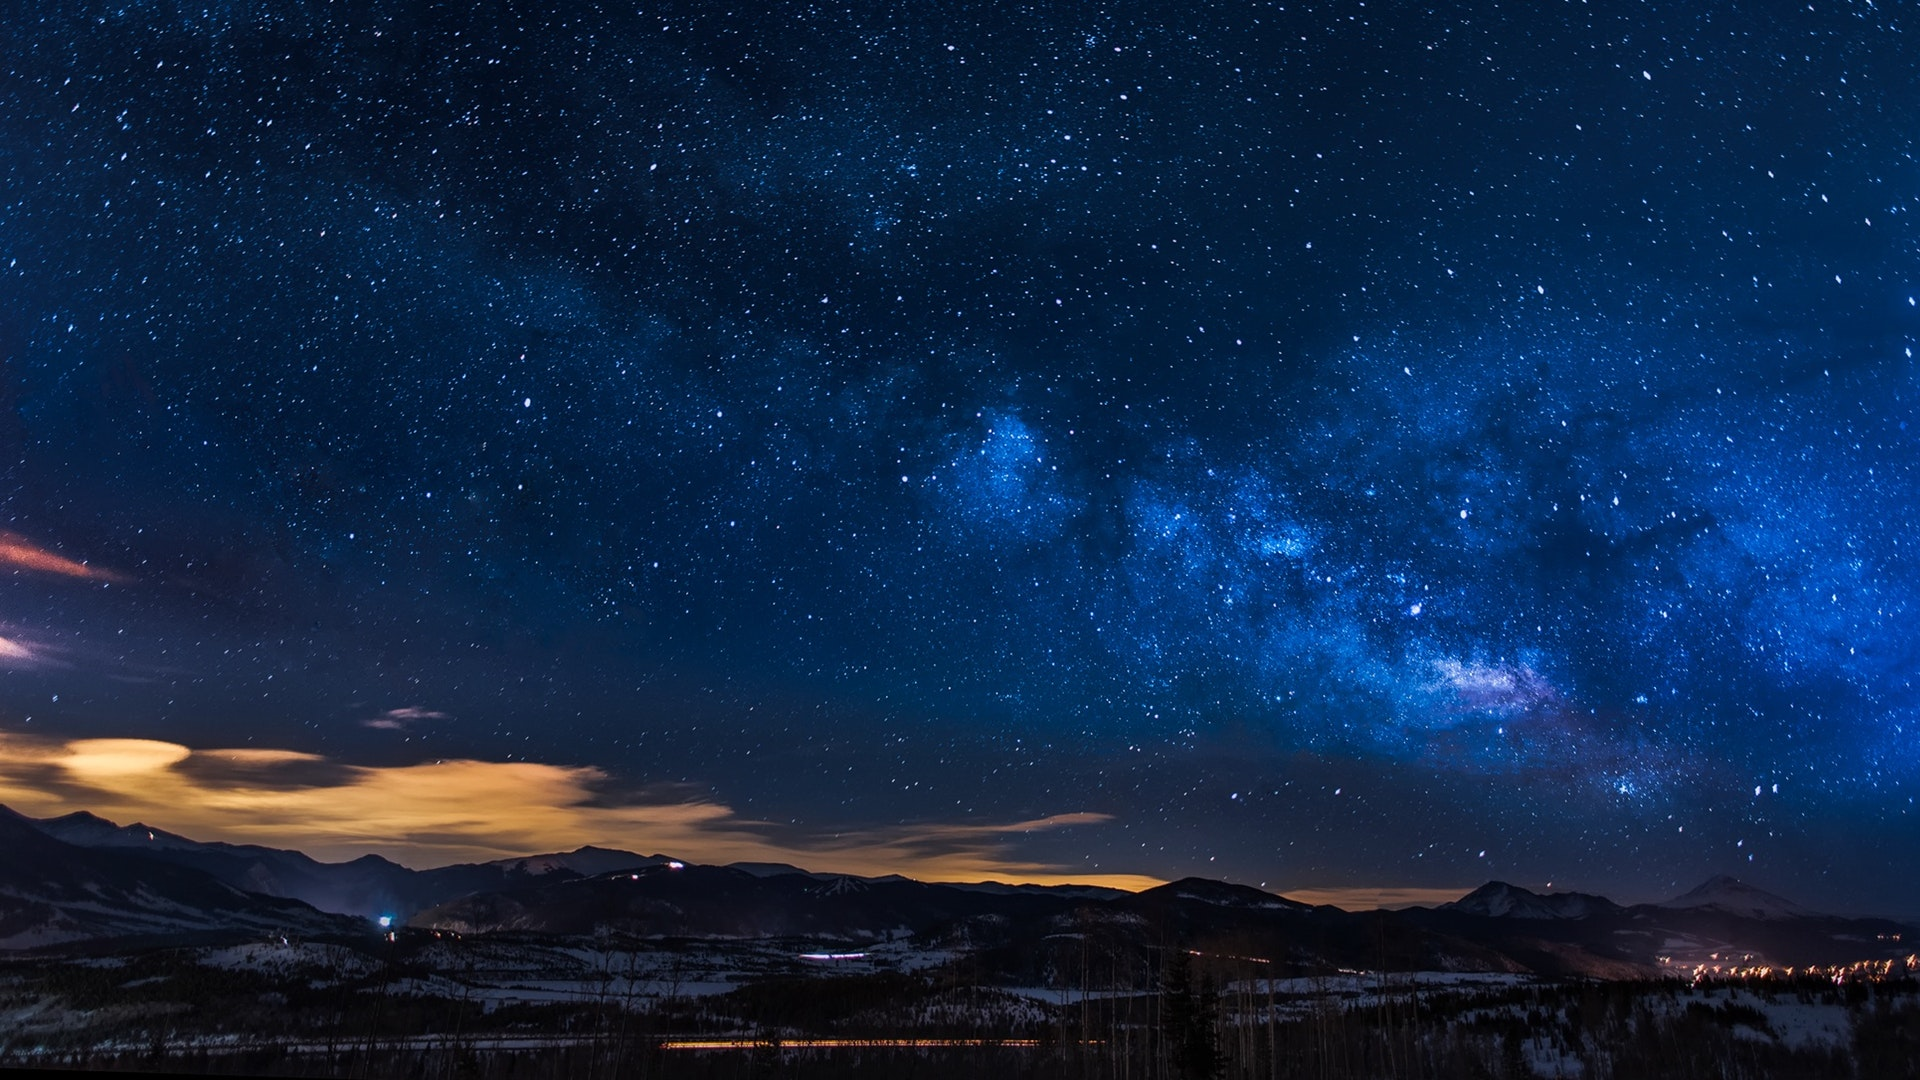 Clouds Stars In Sky Wallpaper - Night Sky With Clouds And Stars , HD Wallpaper & Backgrounds